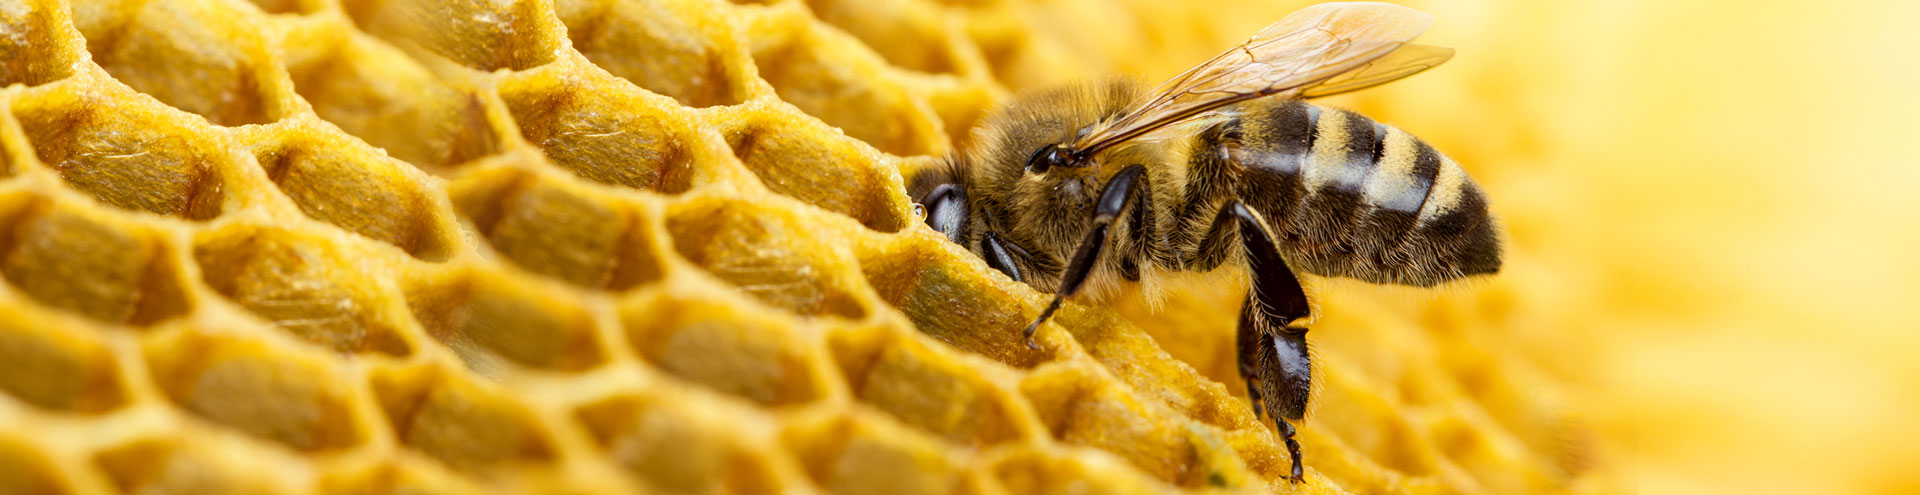 A bumble bee crawling into a honey comb in its hive.